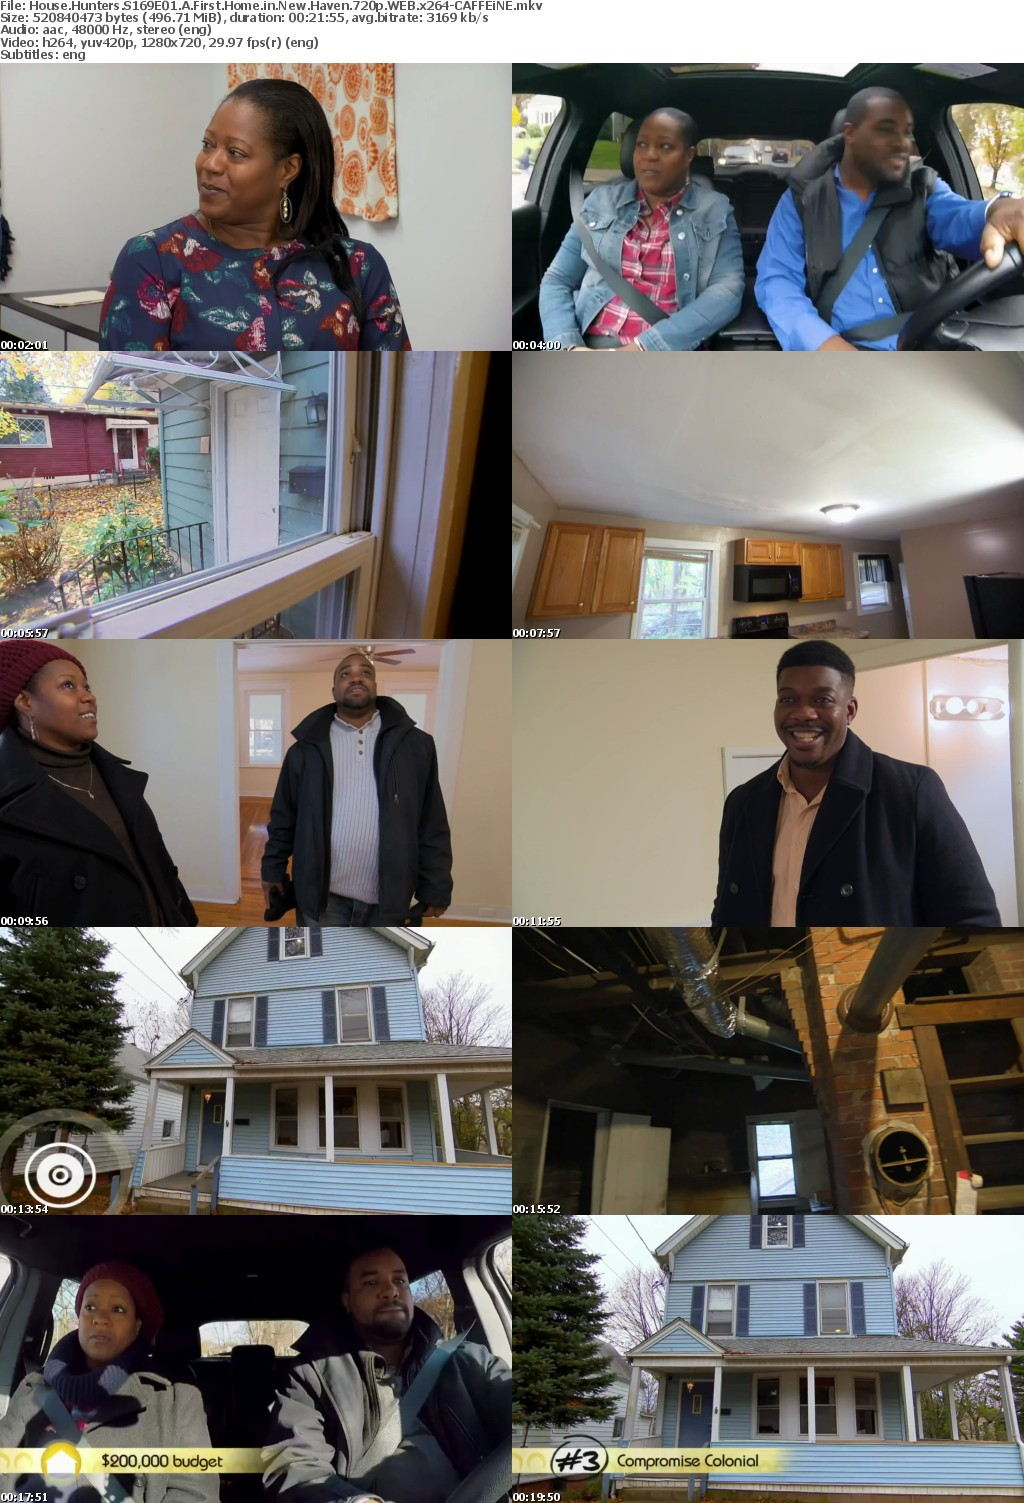 House Hunters S169E01 A First Home in New Haven 720p WEB x264-CAFFEiNE